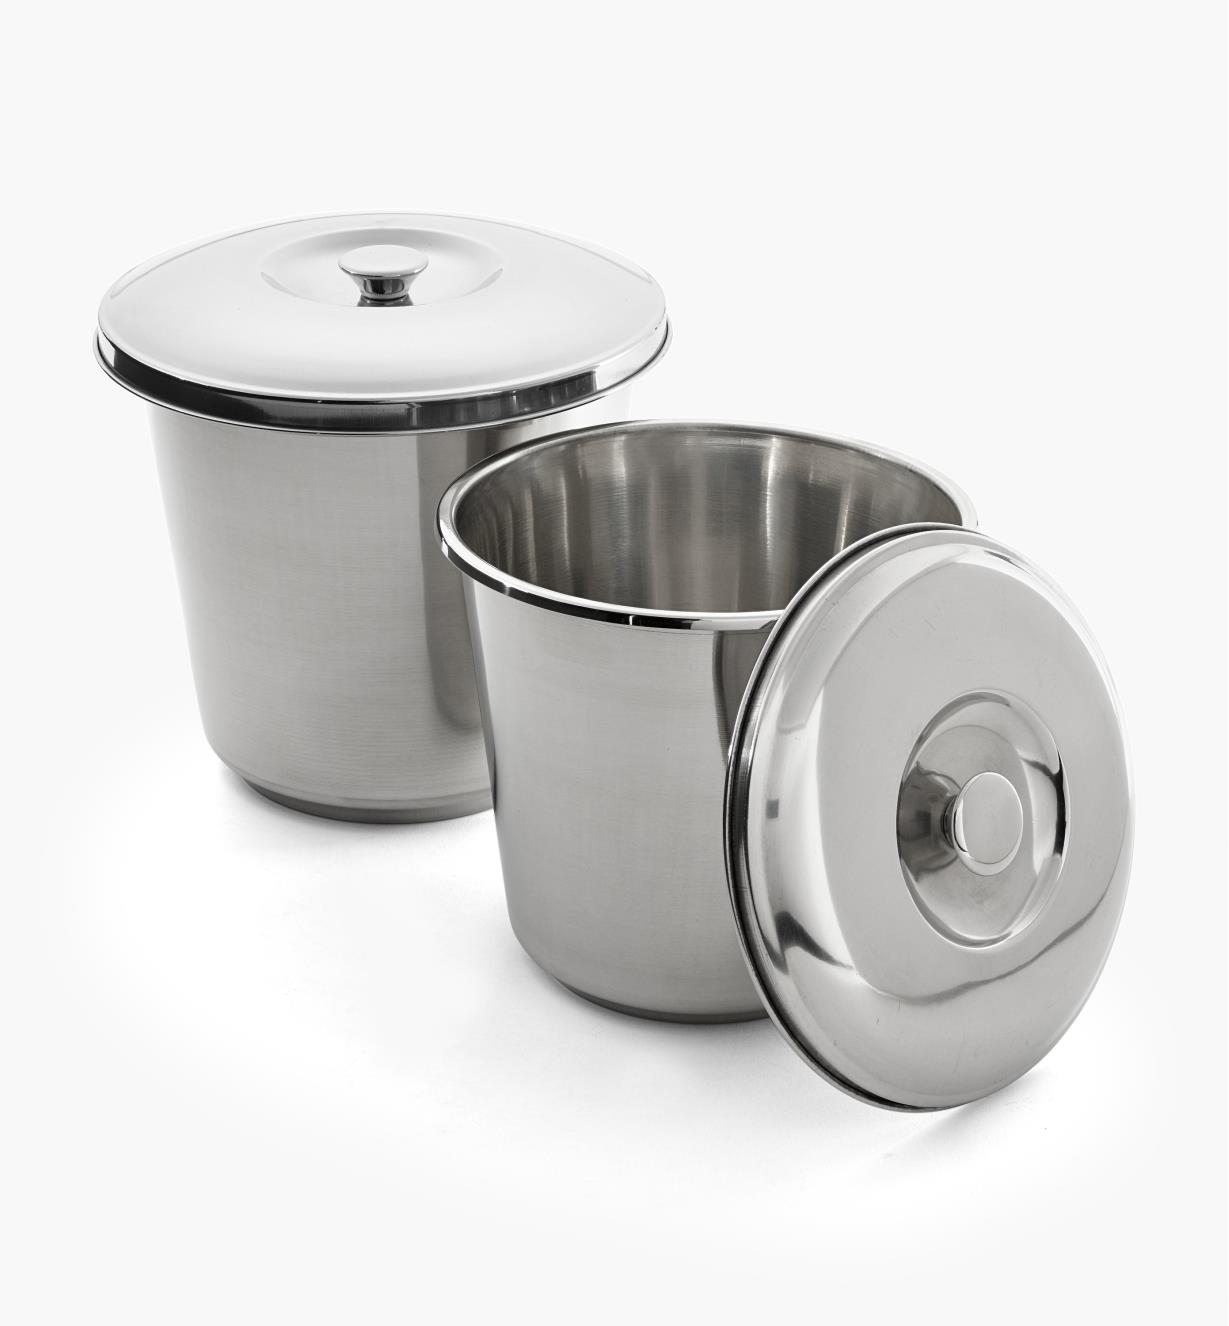 XG167 - Set of Stainless Steel Buckets